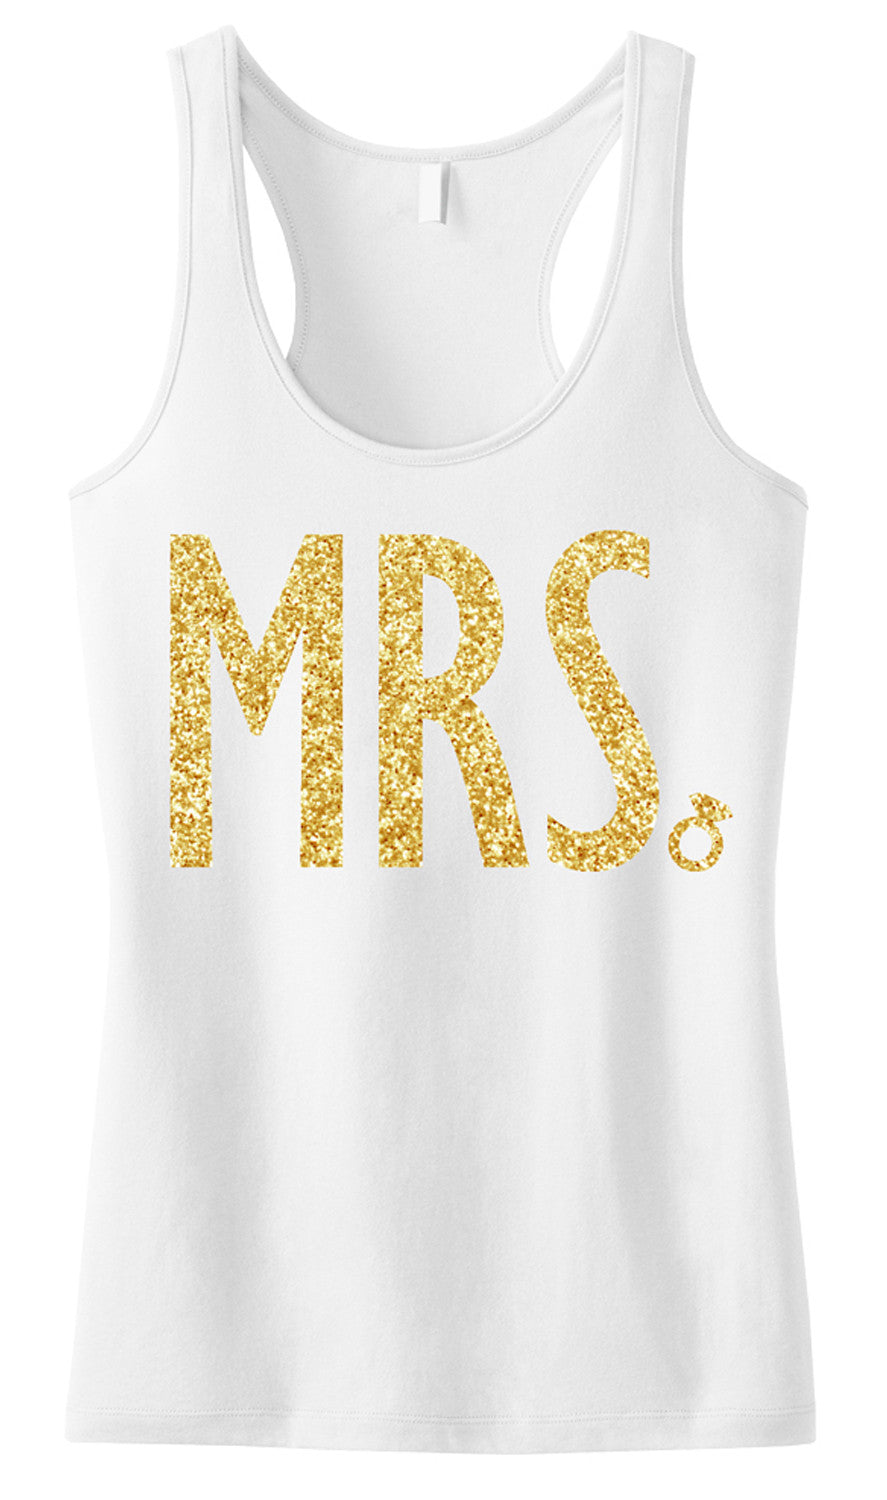 MRS Bride Tank Top with Gold Glitter Print